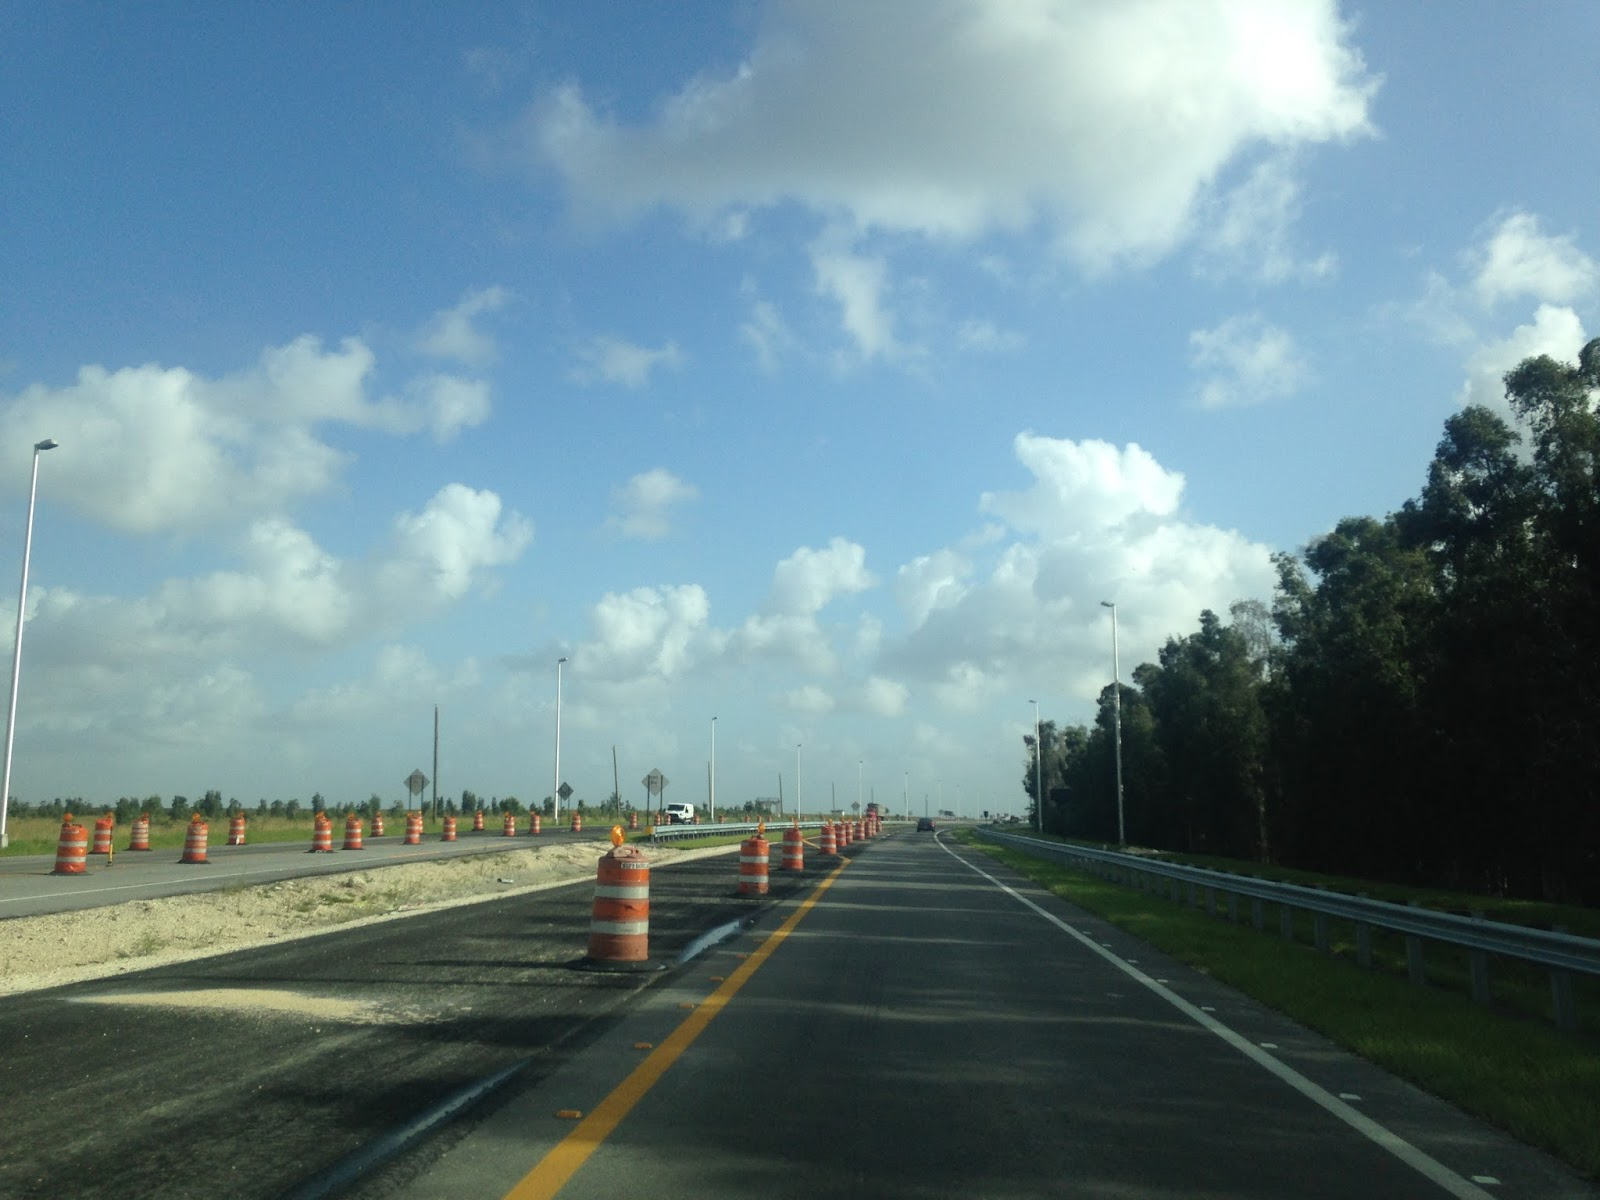 at the north terminus of fl 997 i turned north on us 27 into the everglades to head back towards the tampa area